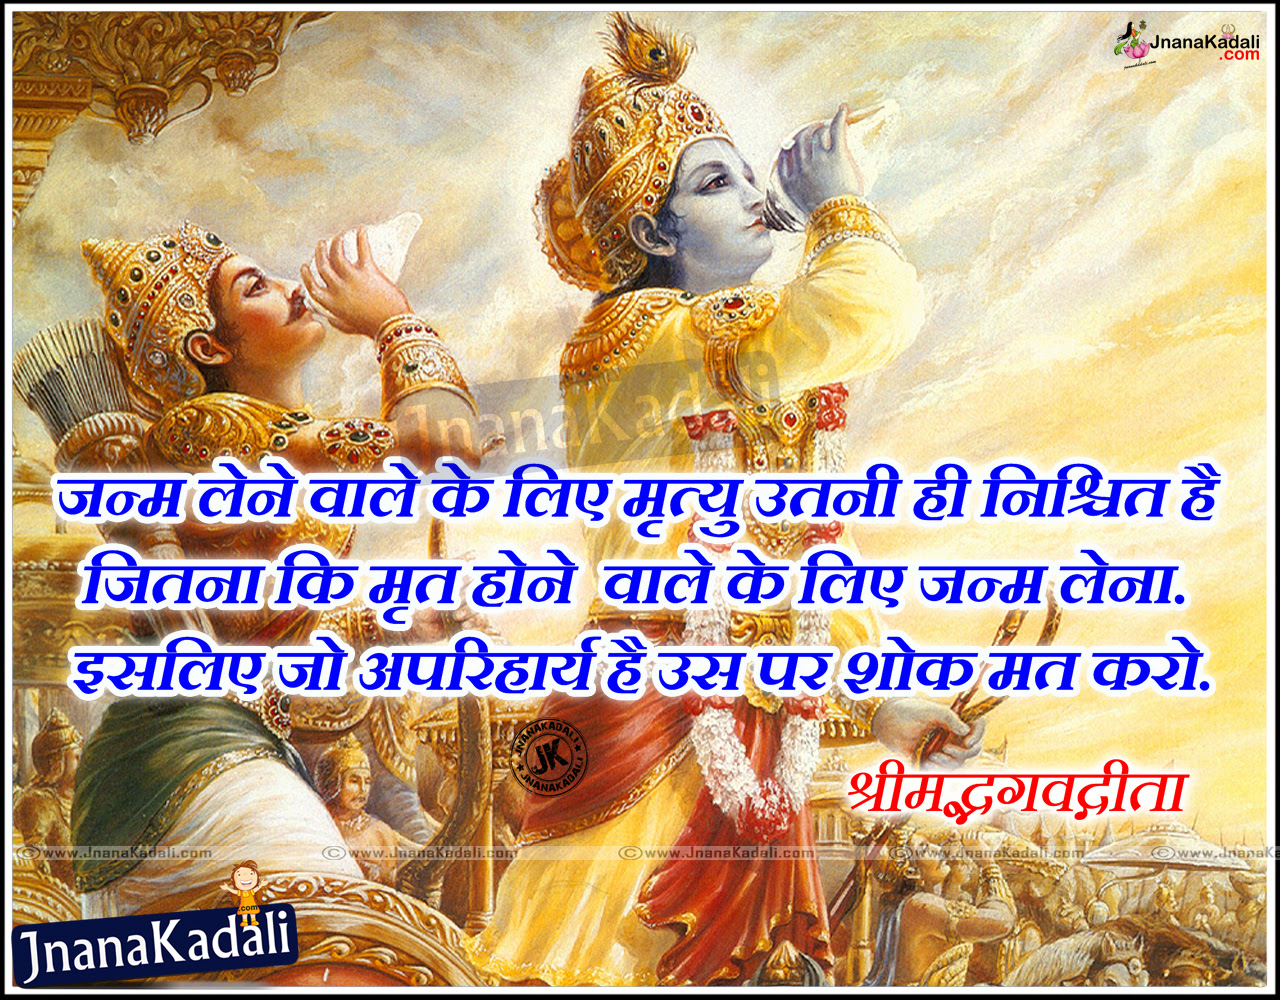 Bhagavad Gita Quotes On Love 13 Simple Lessons From The Bhagavad